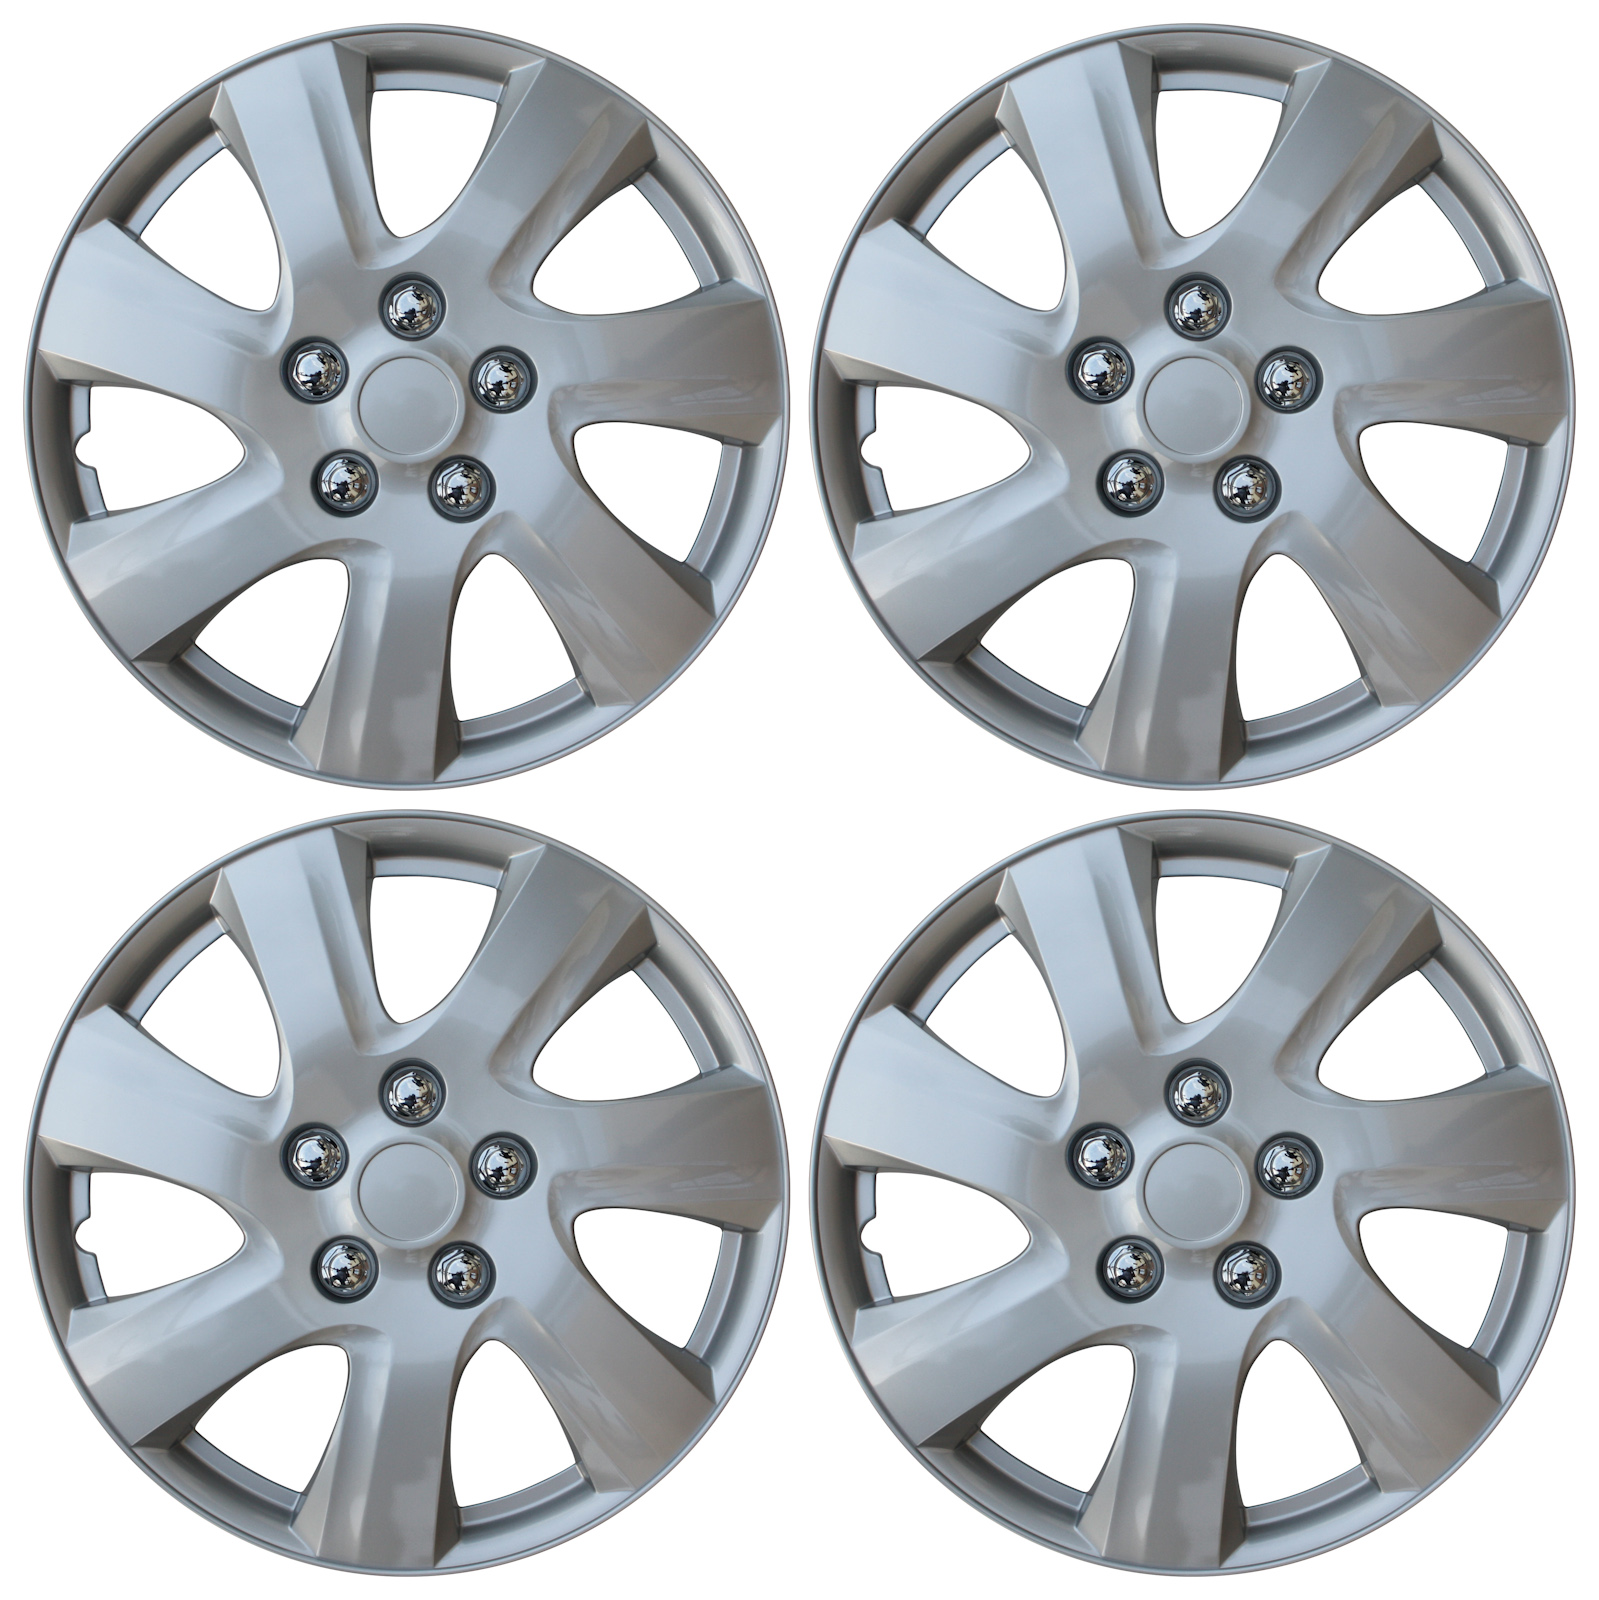 hight resolution of new set of 4 hub caps fits toyota camry 15 universal abs silver wheel cover cap